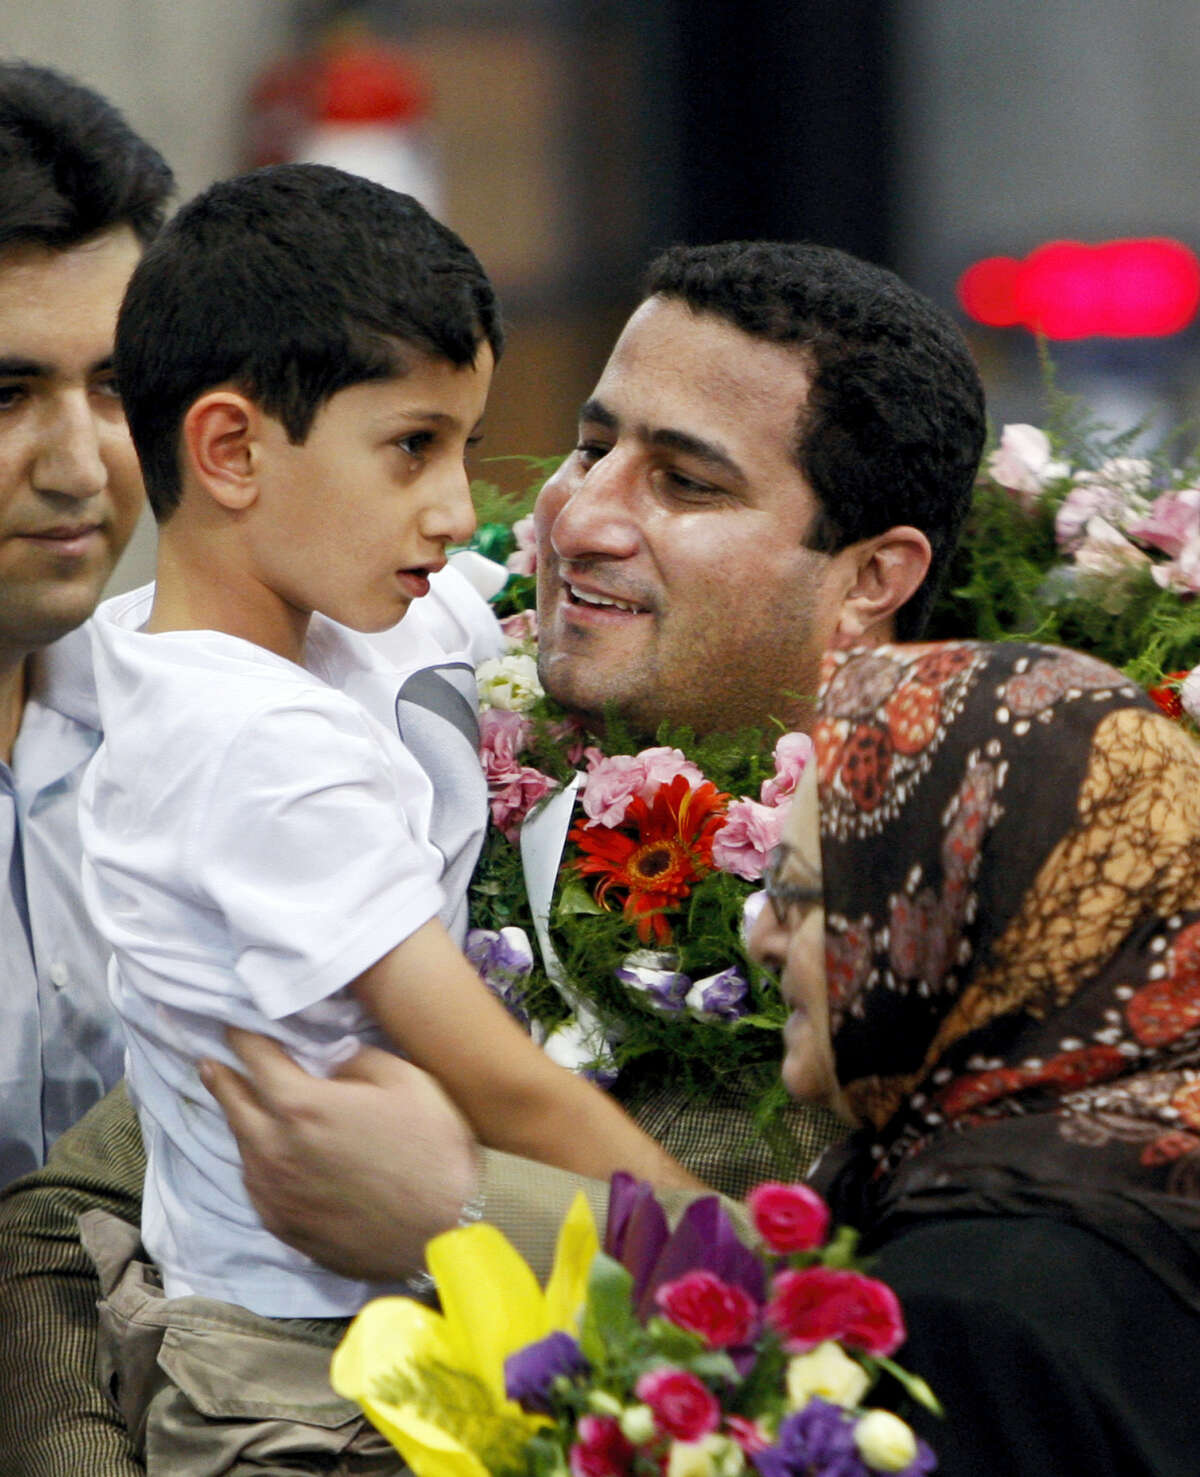 In this July 15, 2010 photo, Shahram Amiri, an Iranian nuclear scientist greets his son Amir Hossein as he arrives to the Imam Khomeini airport after returning from the United States, outside Tehran, Iran. Amiri, who was caught up in a real-life U.S. spy mystery and later returned to his homeland and disappeared, has reportedly been executed under similarly mysterious circumstances.